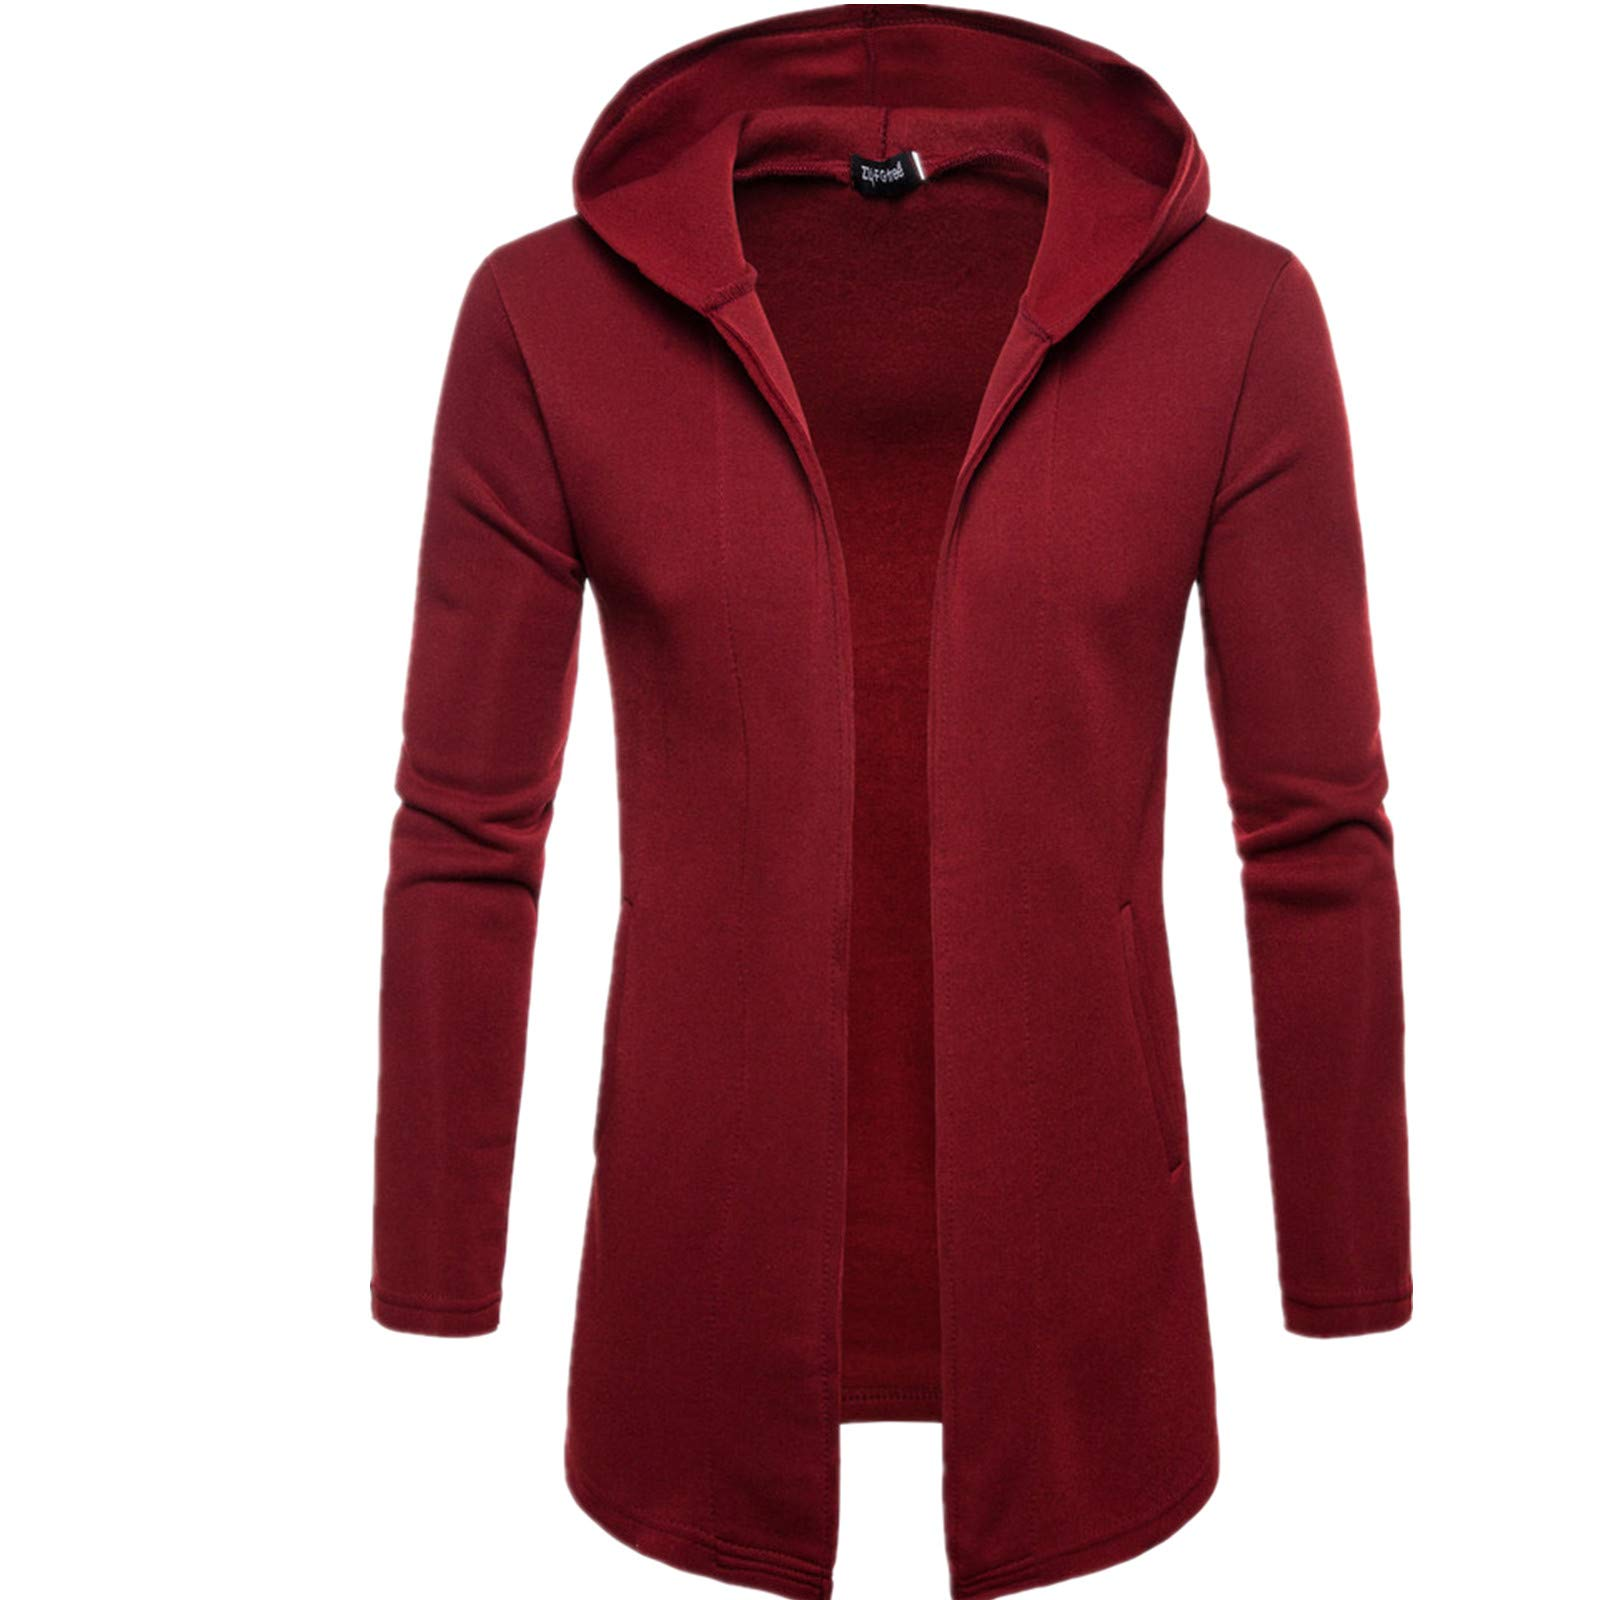 PASATO Mens Classic Hooded Solid Trench Coat Jacket Cardigan Long Sleeve Fashion Outwear Blouse Clothes Featured(Wine Red, XL)